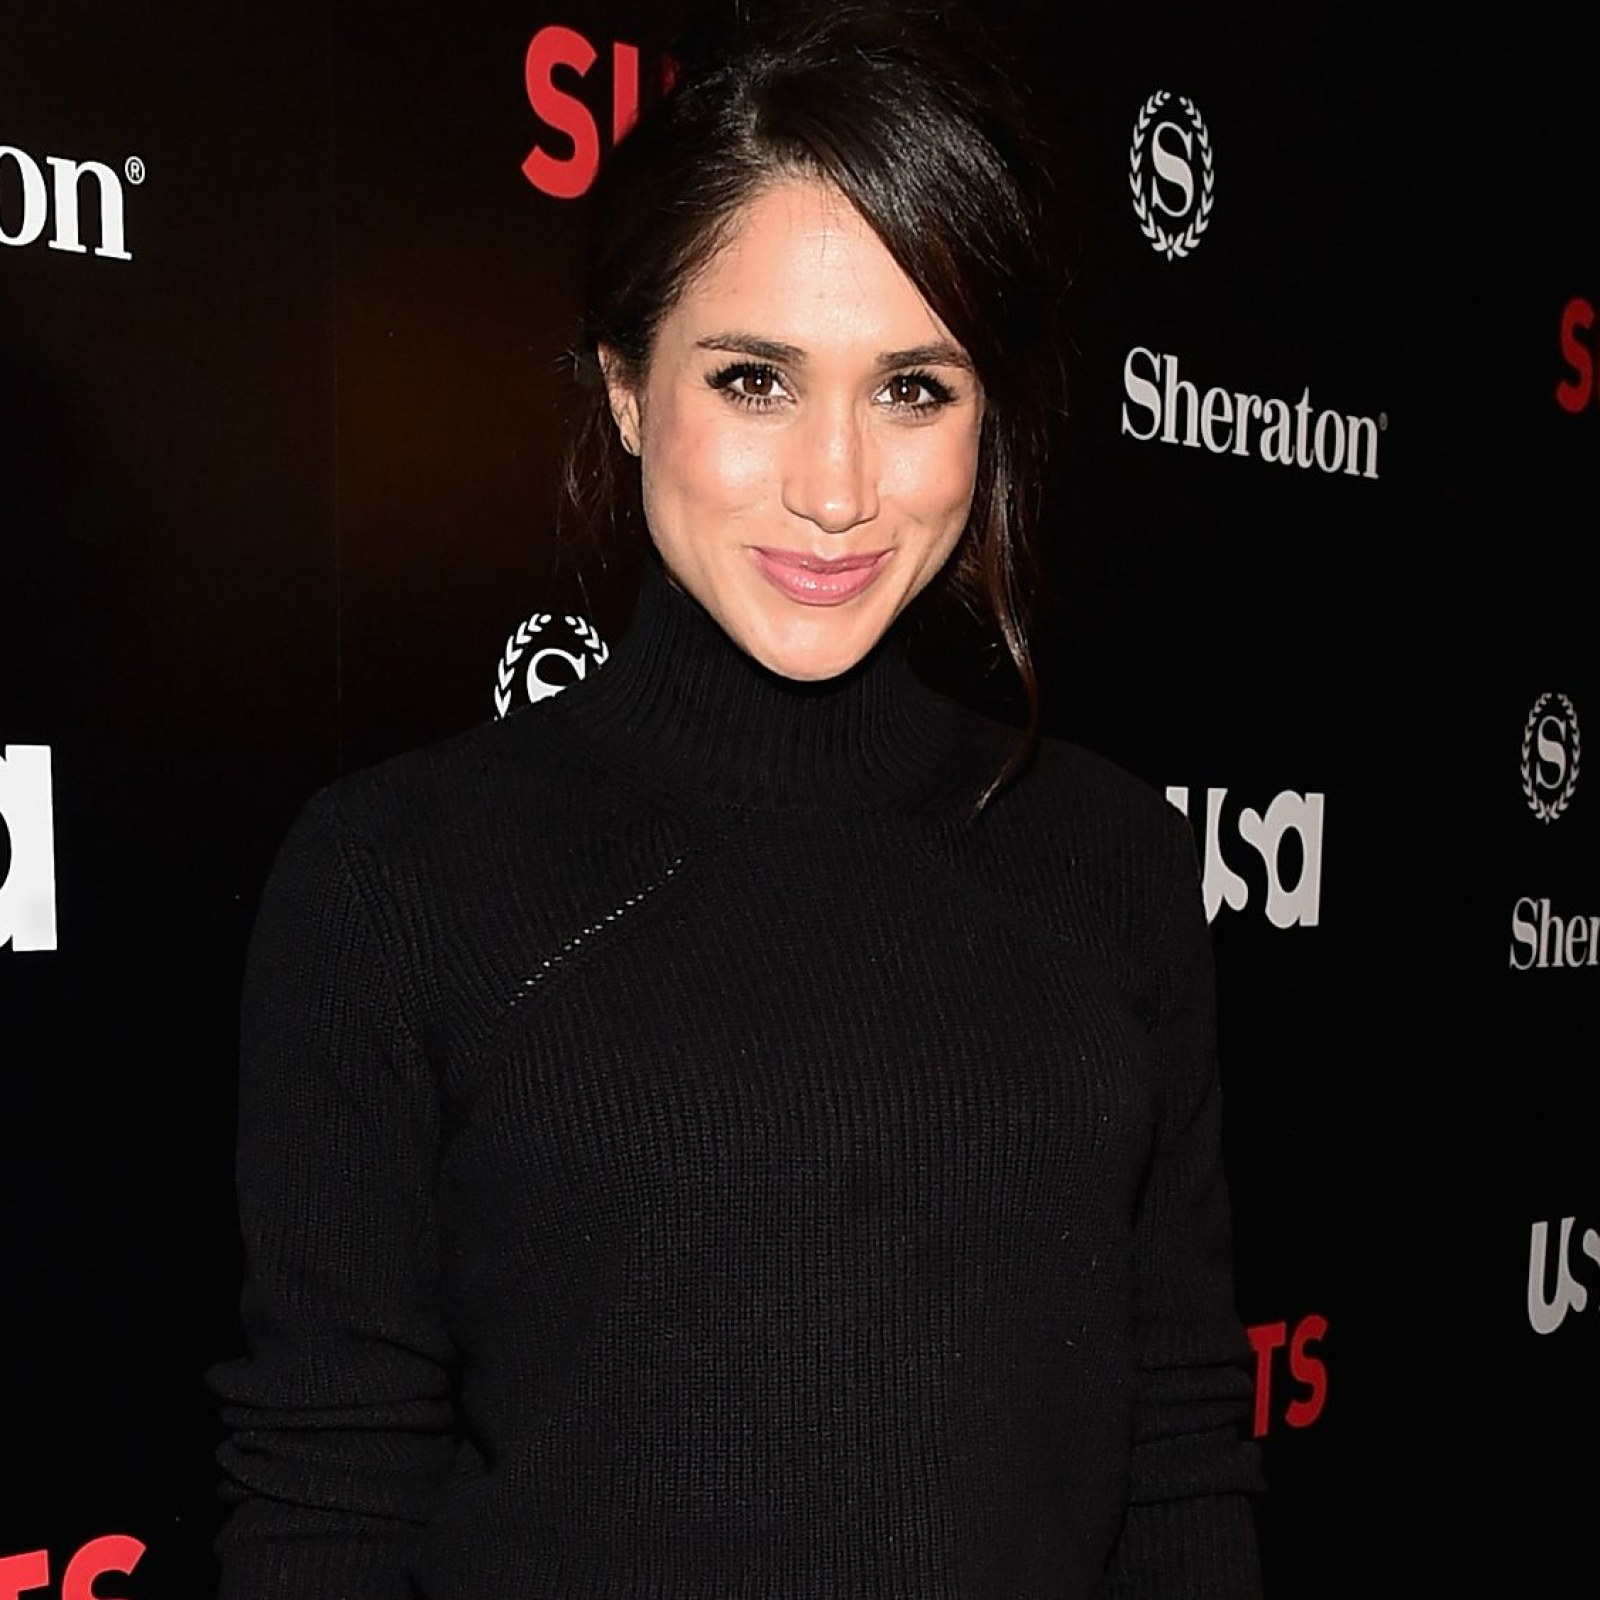 Meghan Markle 'Won't Be Allowed to Be Black Princess' by